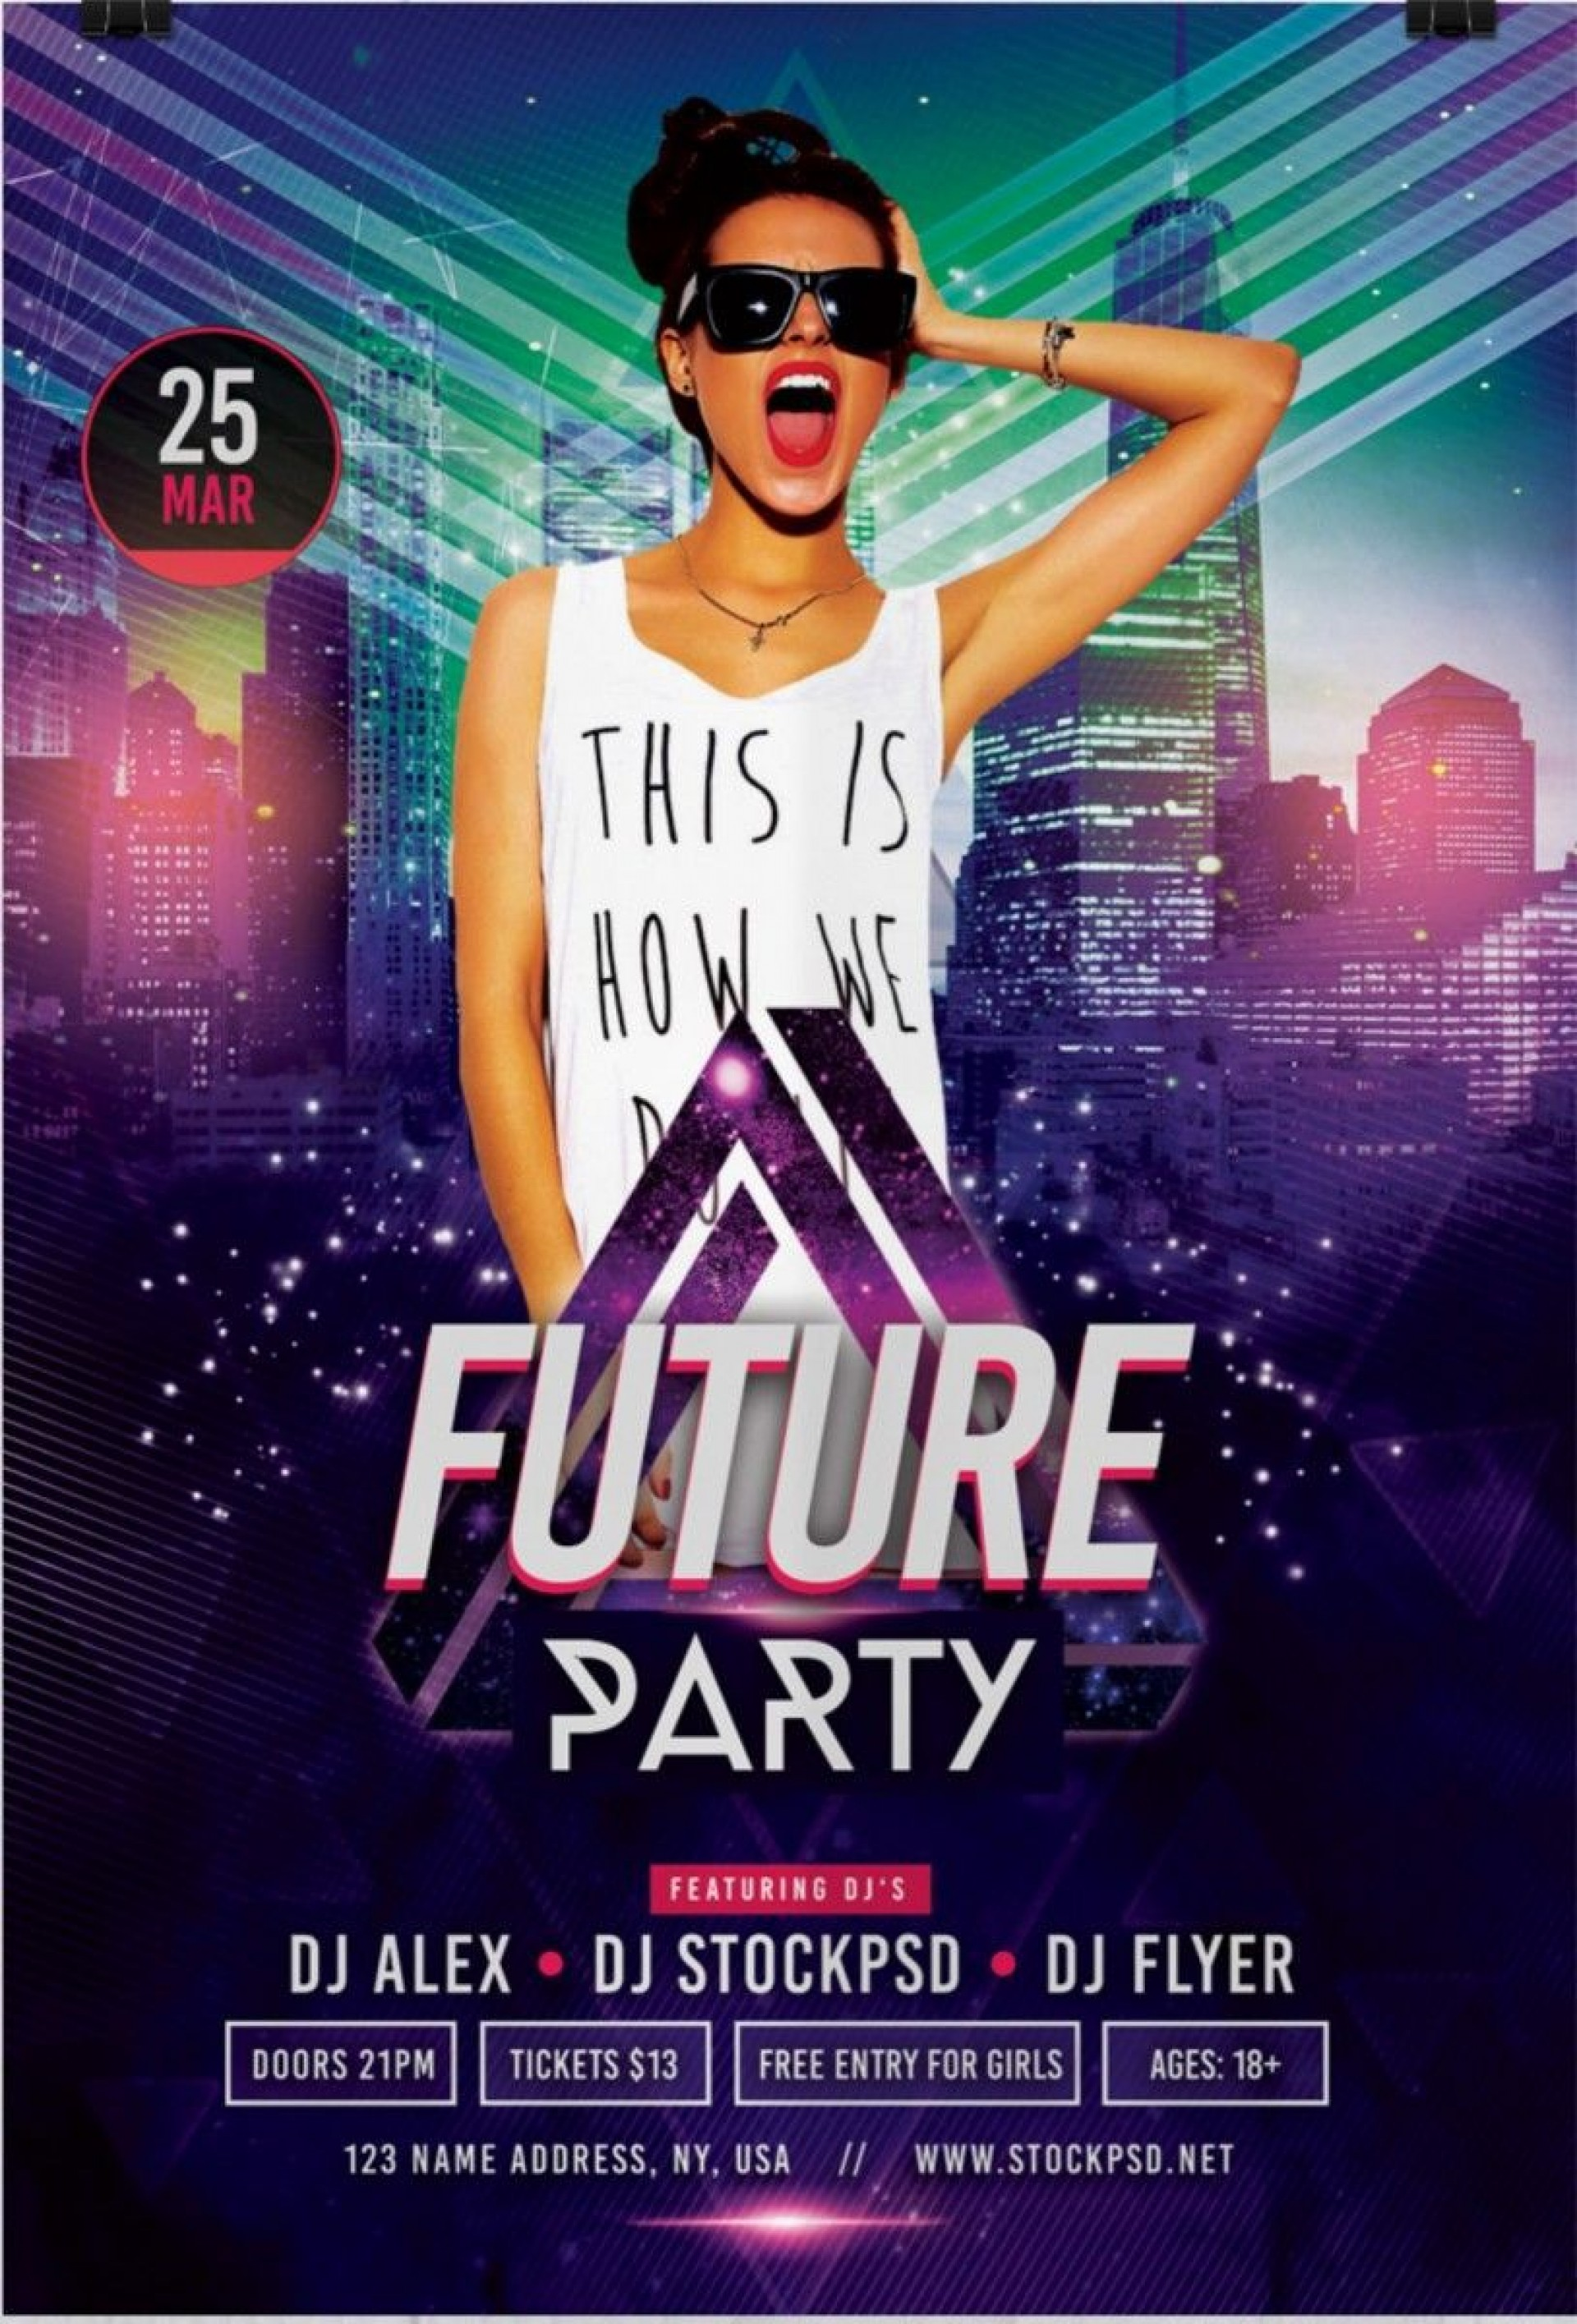 004 Impressive Free Party Flyer Template For Mac Design 1920